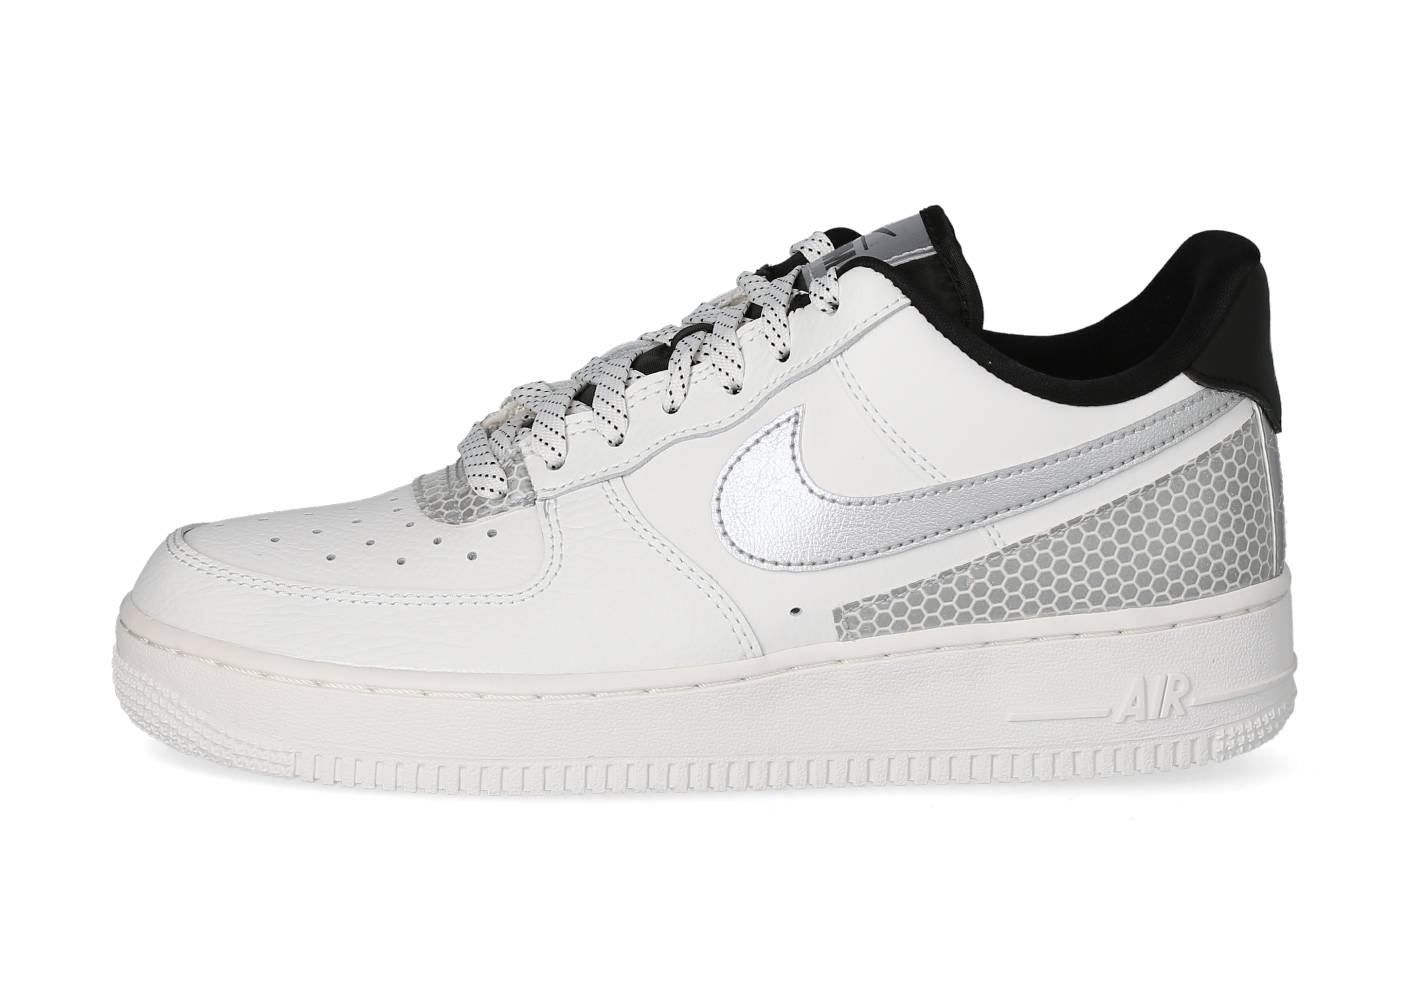 Nike Homme Air Force 1 Lv8 3m Blanche Baskets 47 1/2